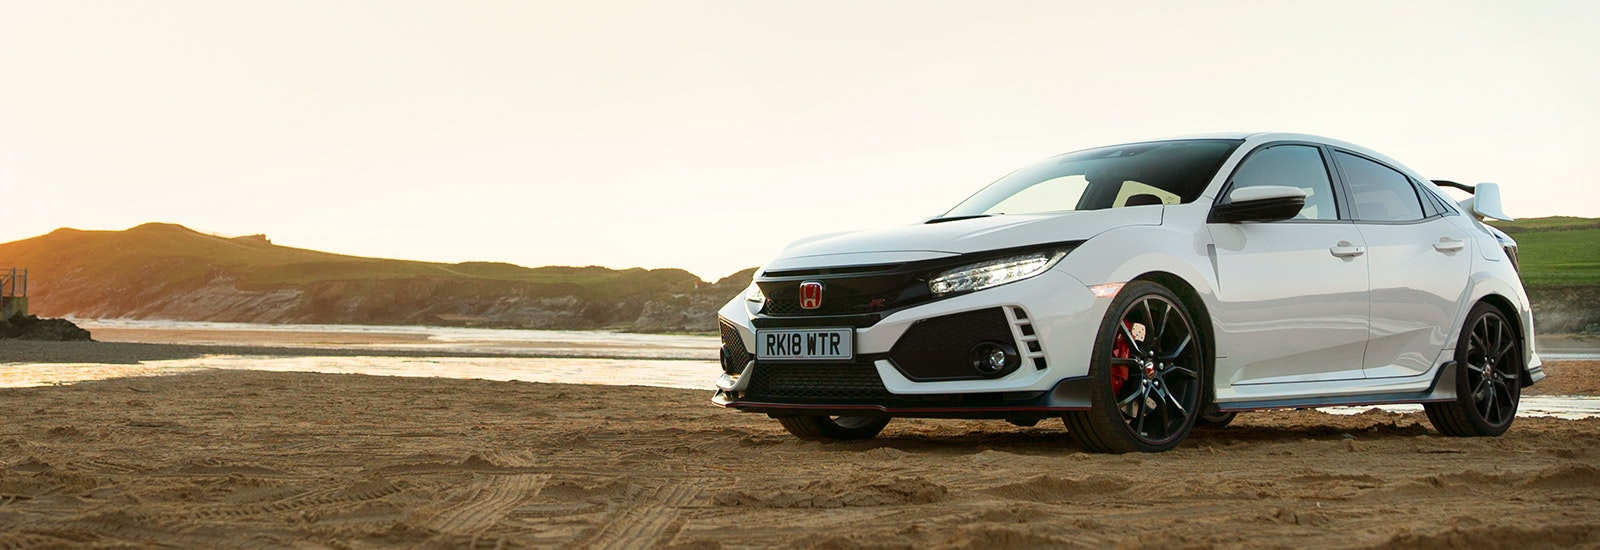 Championship White Honda Civic Type R parked, viewed from the front